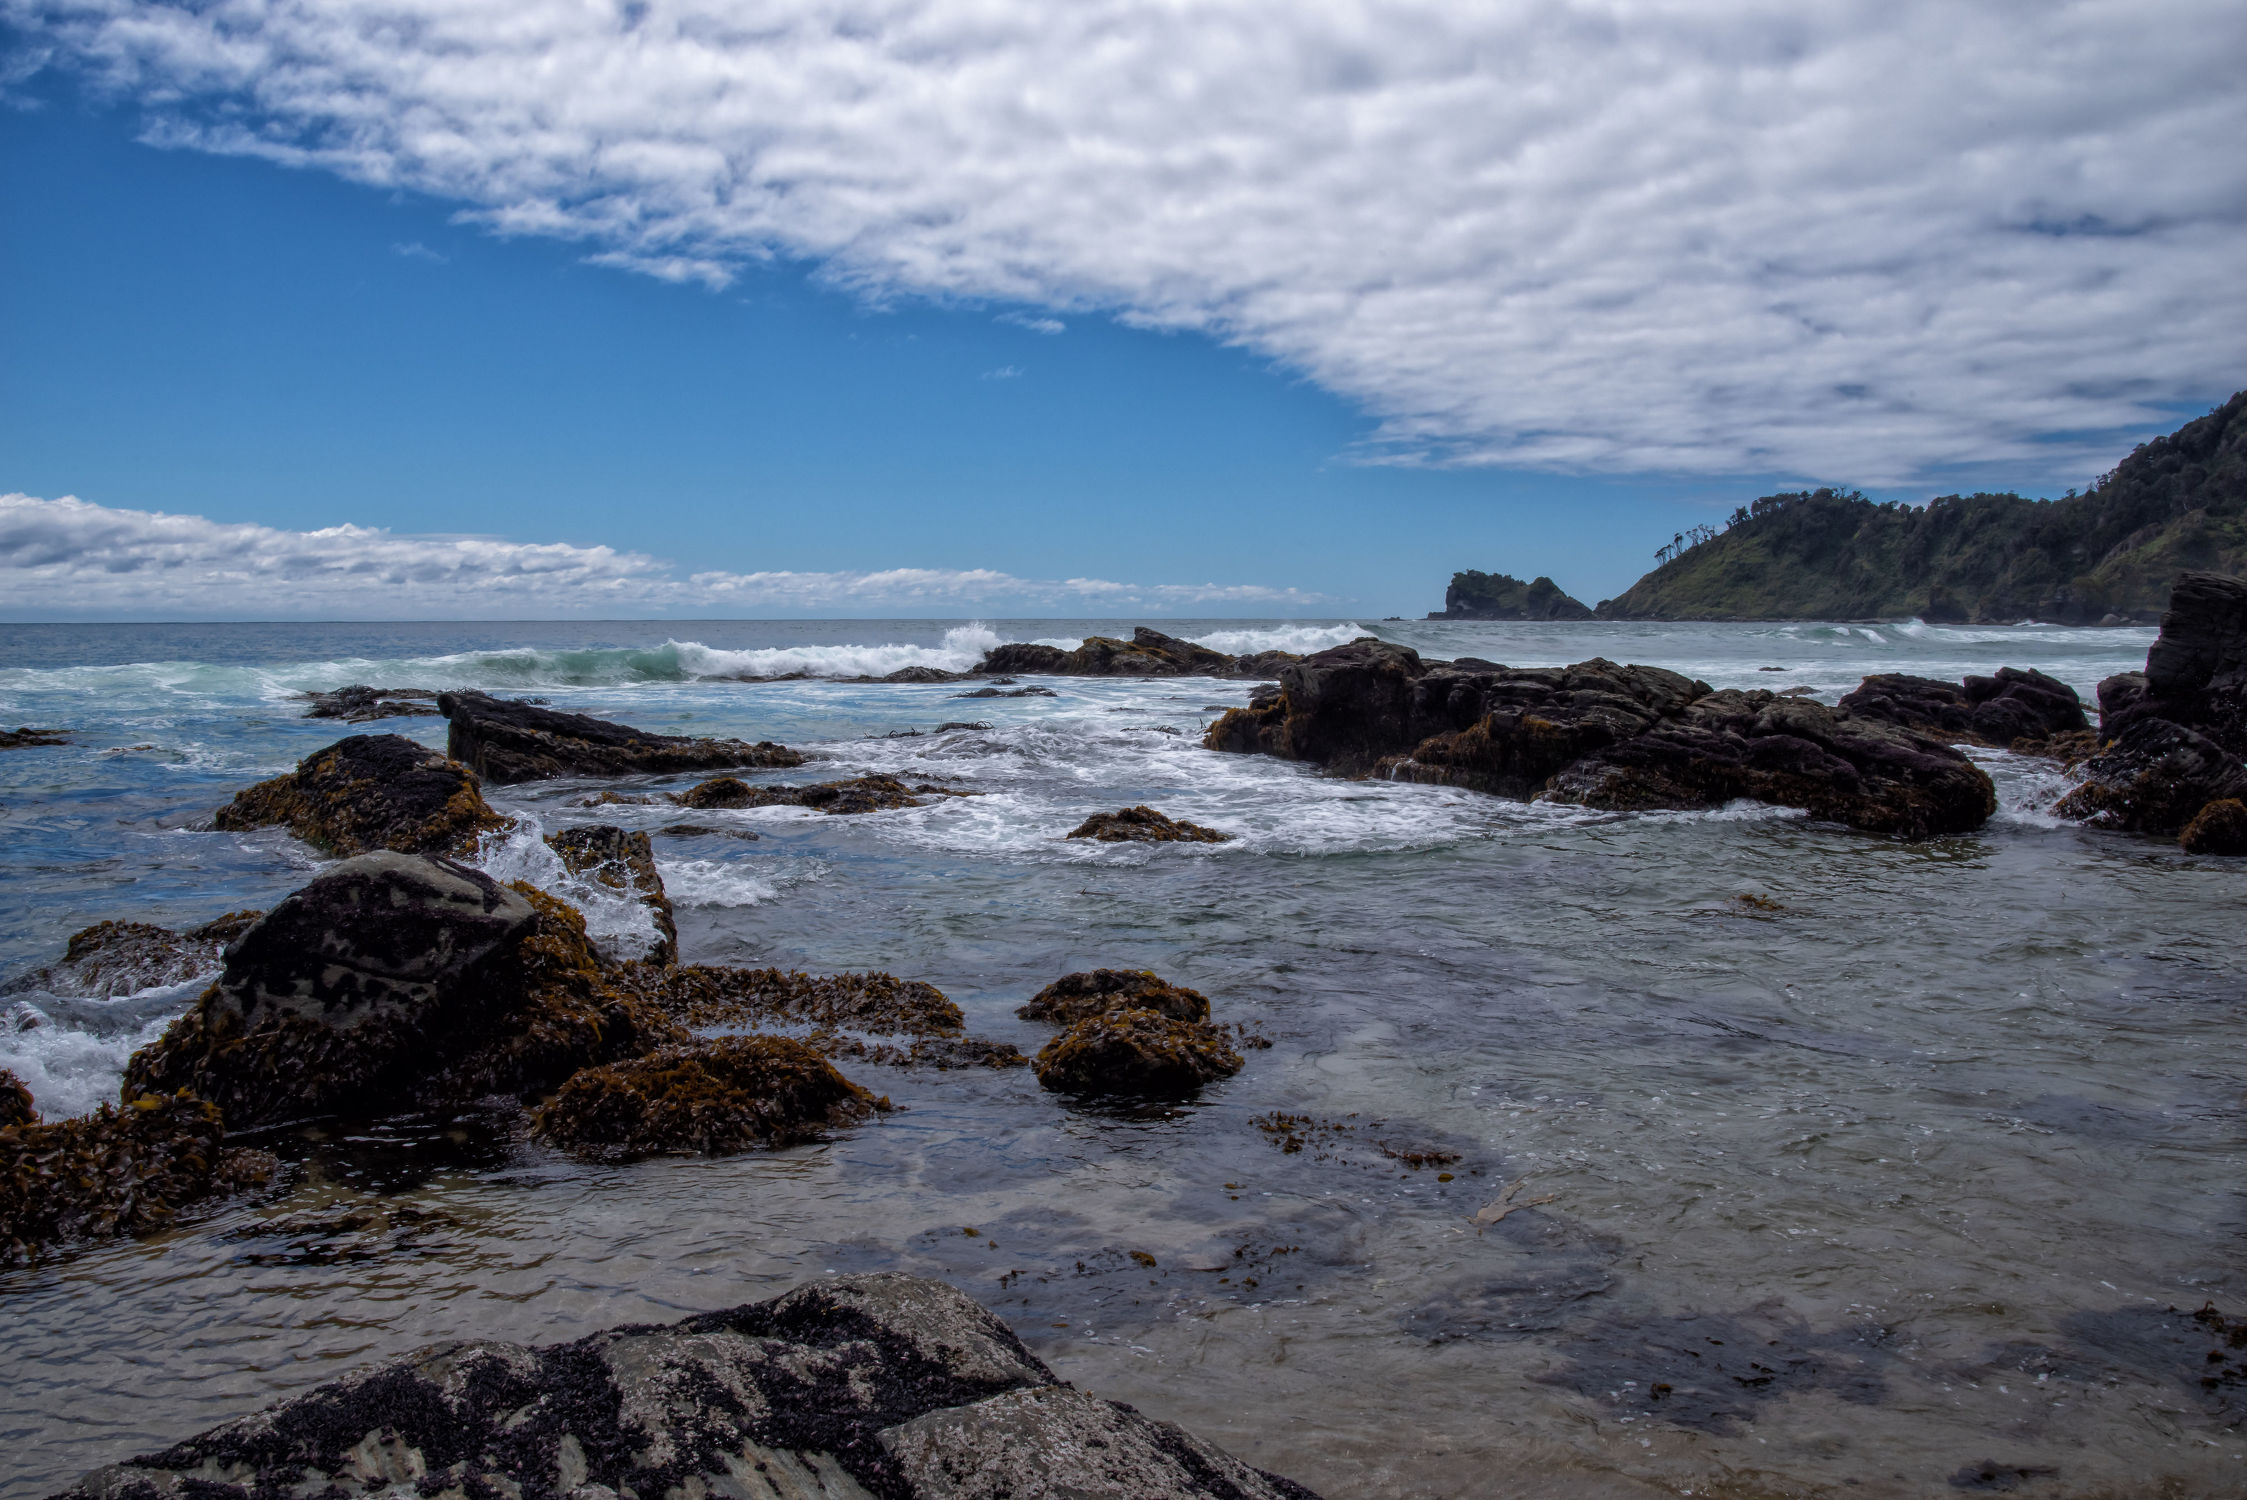 Bild mit Sky, clouds, Beach, Beach, Ocean, Nature, blue, Stones, water, Wind, summer, summer, Tide, plants, Chile, Pazifik, Los Lagos Region, South America, holidays, pacific, flow, waves, surf, coast, shore, eukalyptue, rock, southern Chile, bay, flood, hor